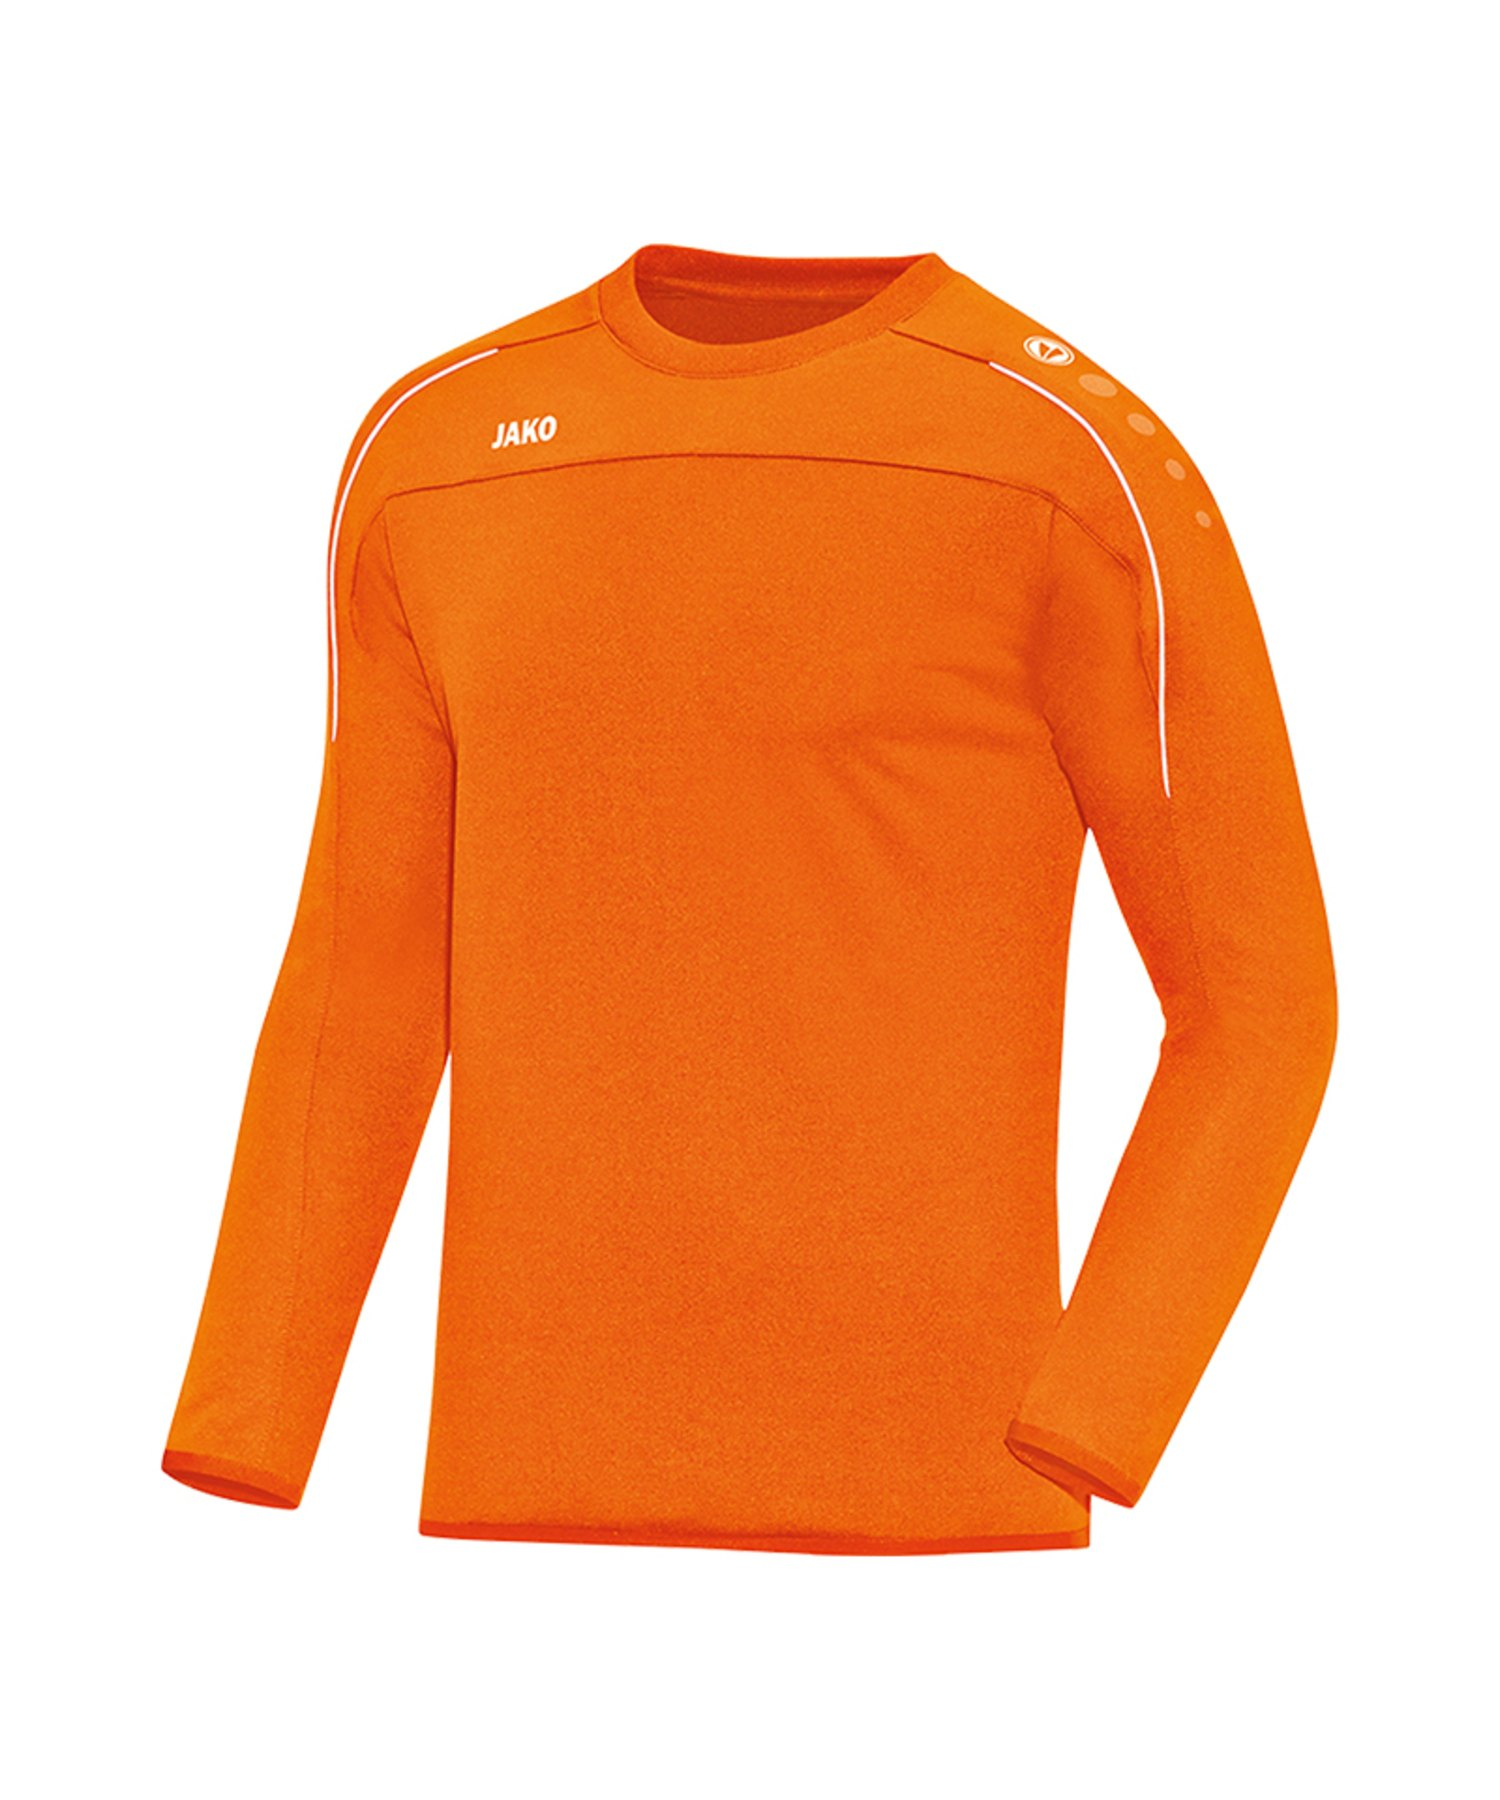 Jako Classico Sweatshirt Kids Orange F19 - Orange